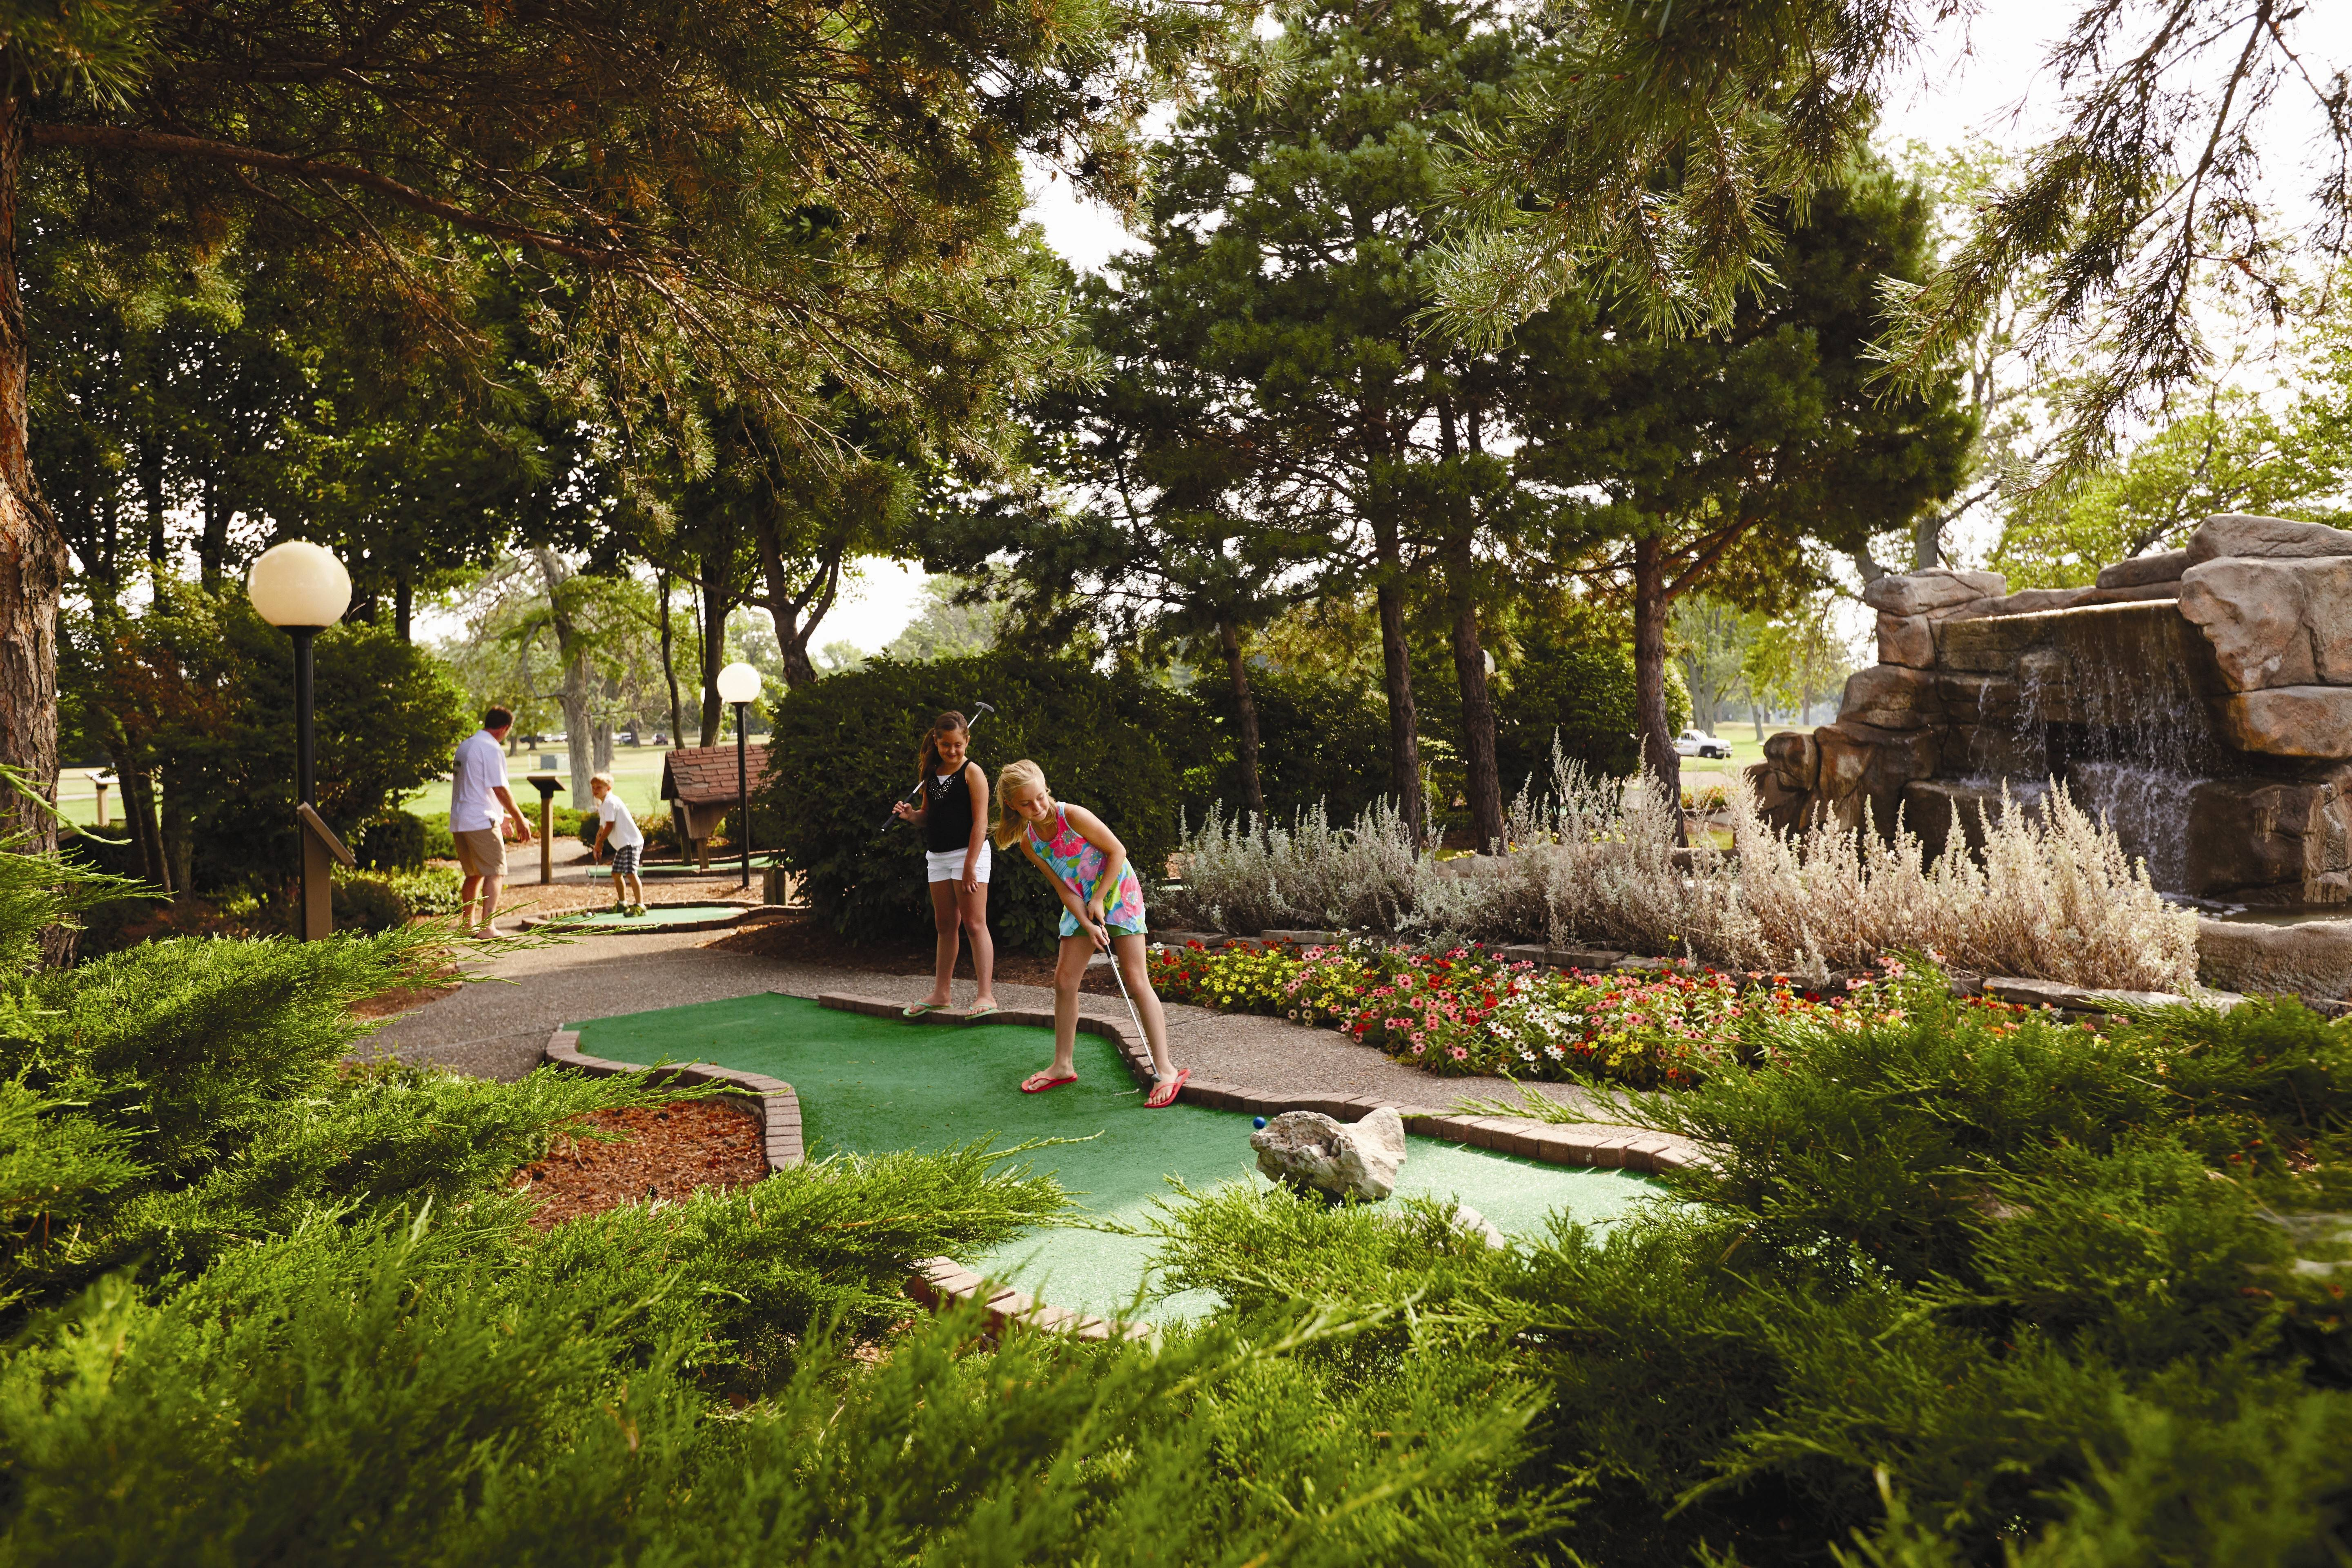 There's lots of family activity inside and out, including mini-golf, when you book a Spring Break Package at Lake Lawn Resort in Delavan, Wis., through April 30.